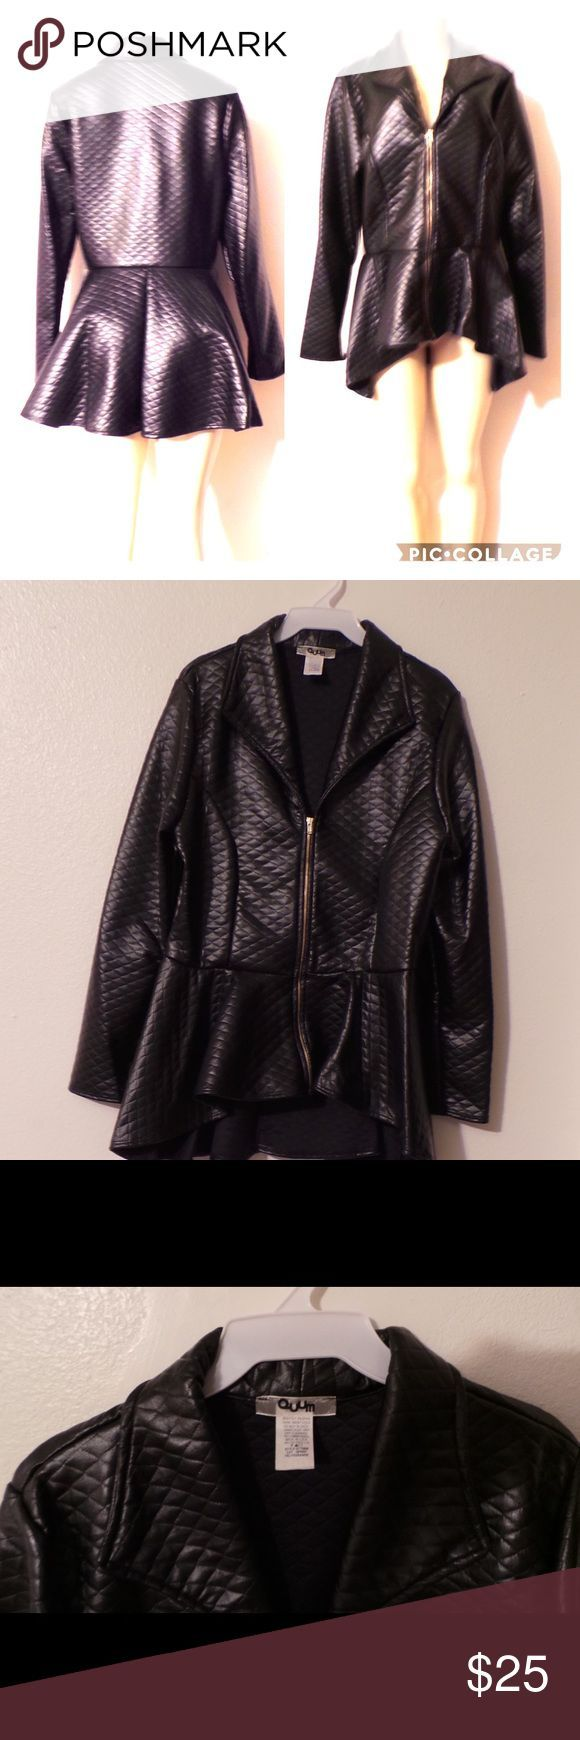 Plus Size Peplum Checkered Stitch Coat in Black Size 1X is pictured in photo. Black faux leather jacket with checkered stitching that zips down the front. Jackets & Coats